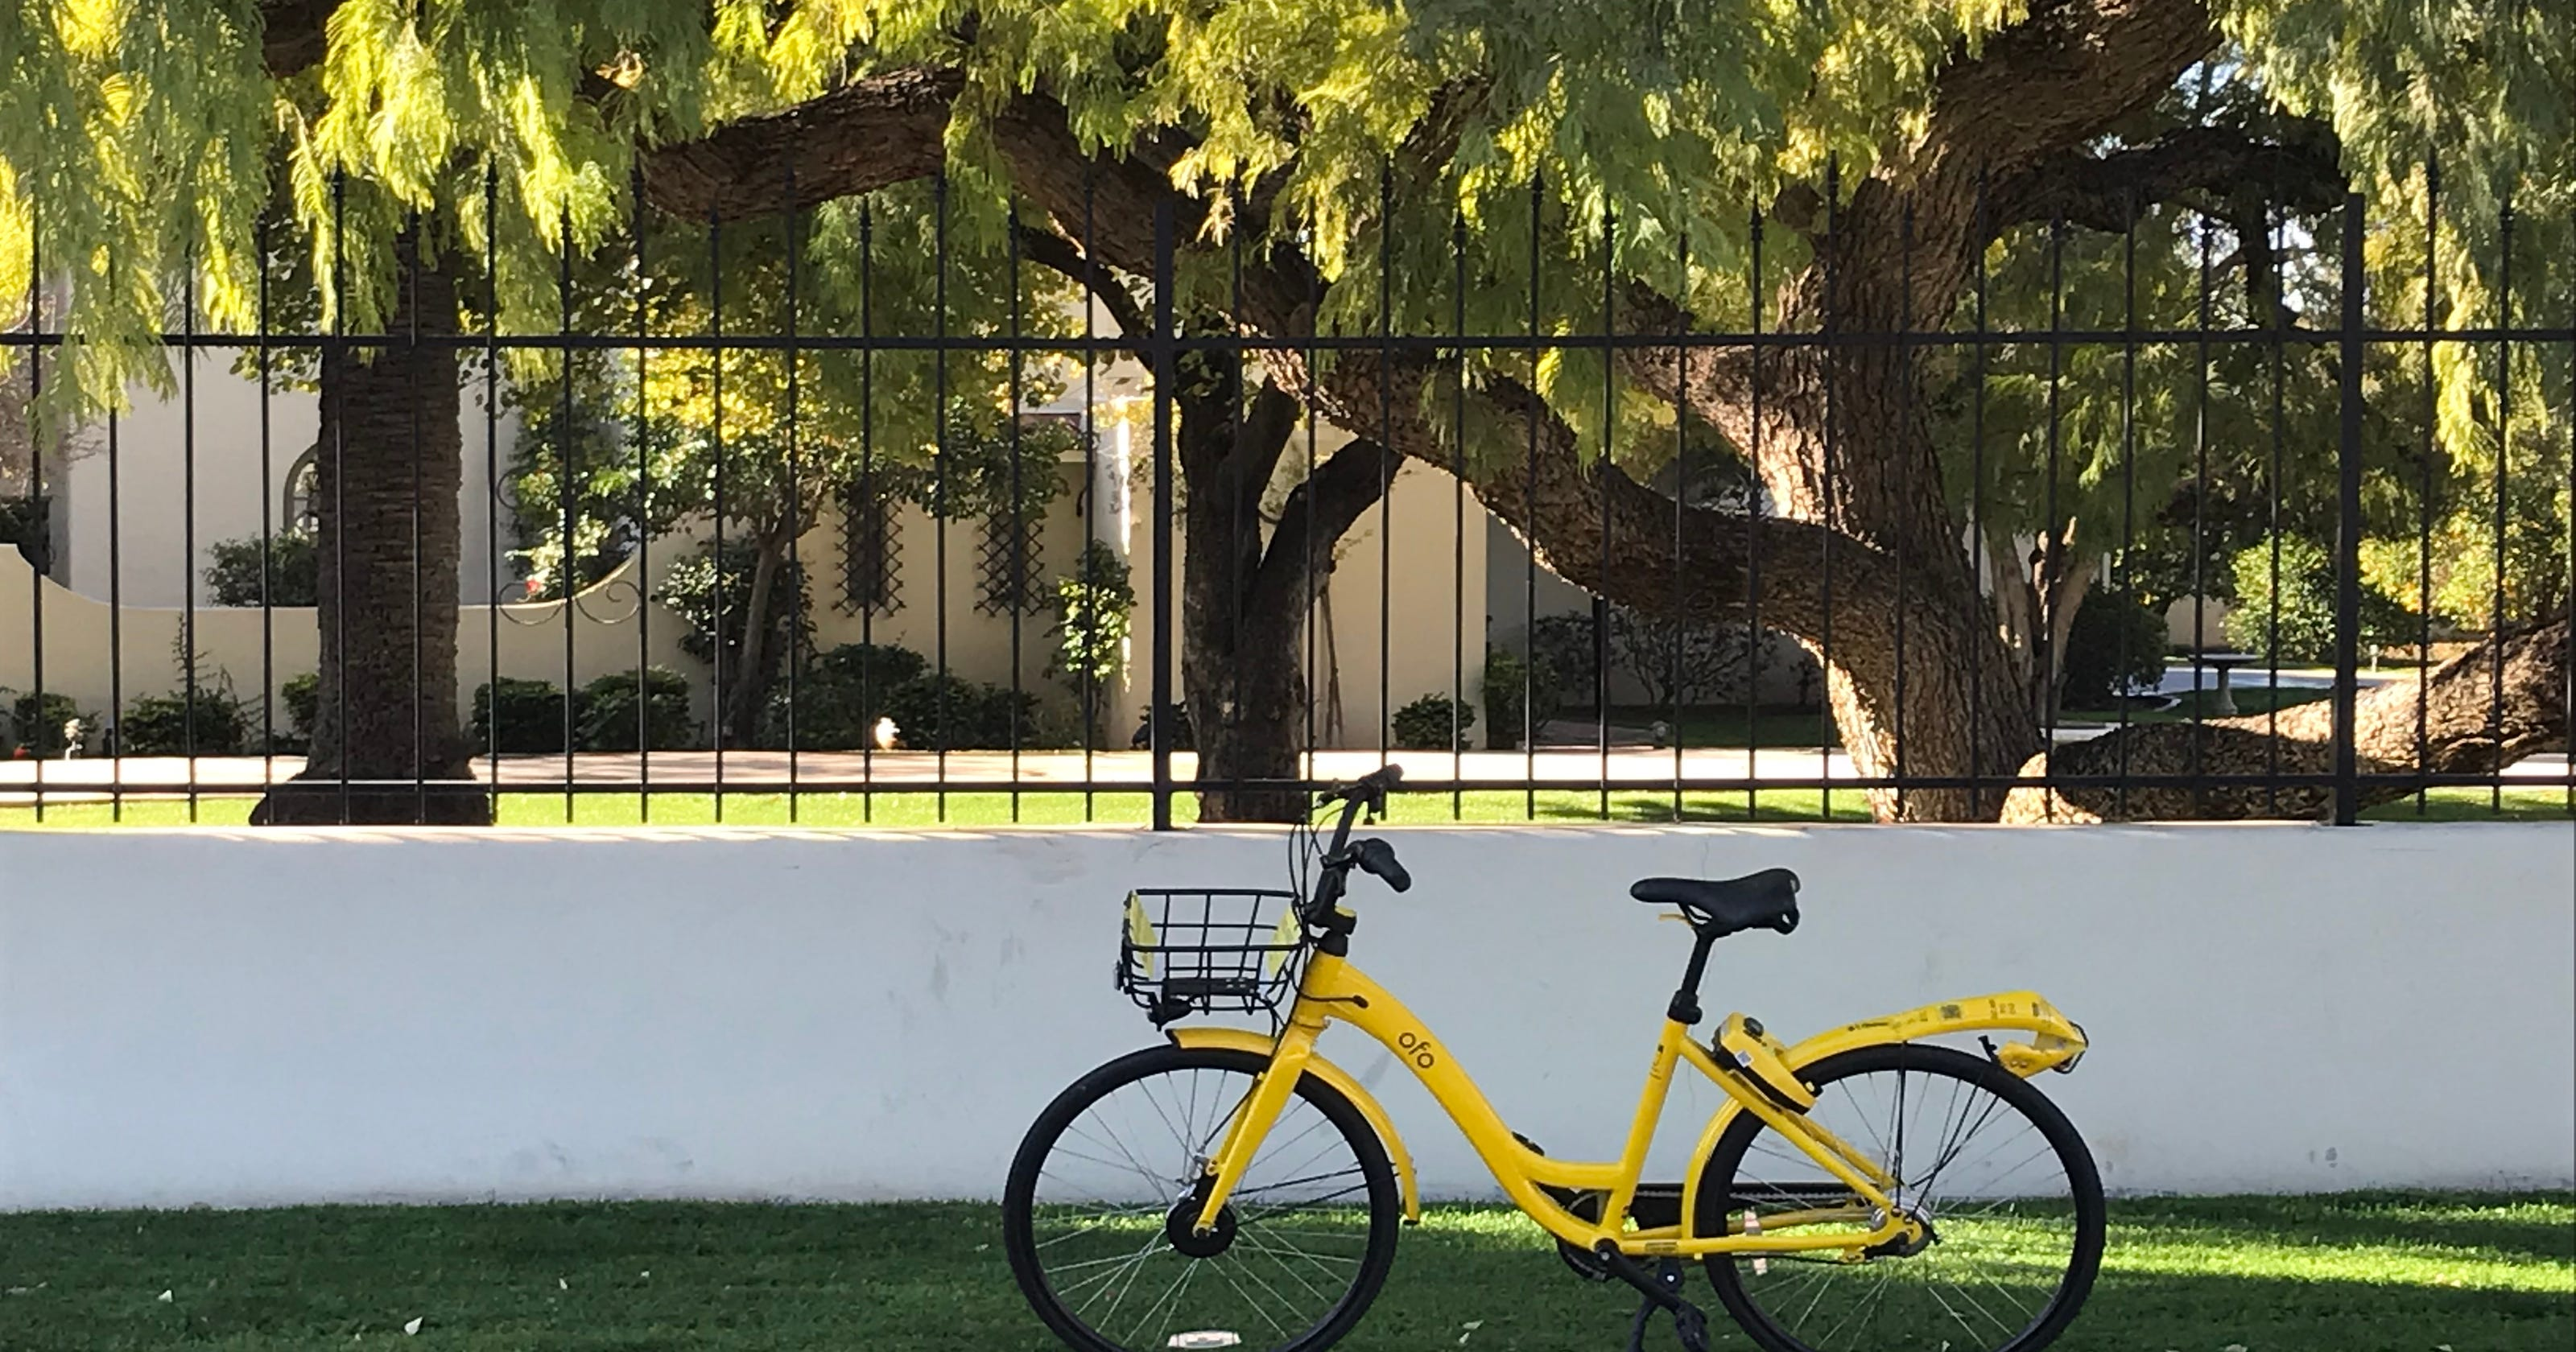 Bike Sharing In Phoenix Are Parked Bikes The Same As Litter